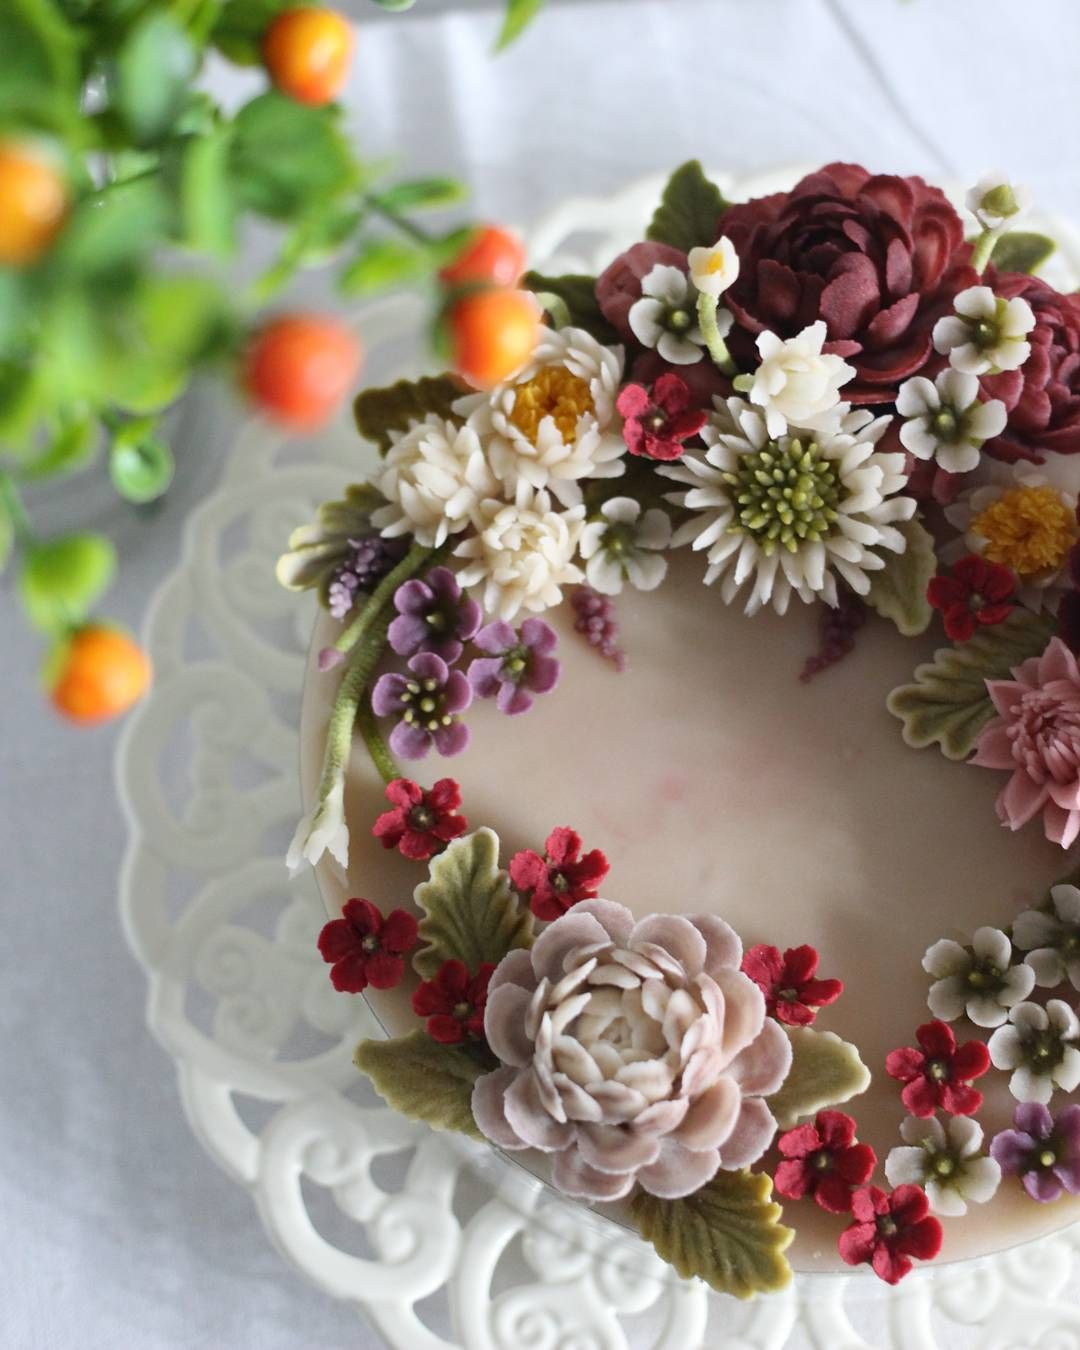 Floral Cake Cakes Pinterest Floral Cake Cake And Buttercream